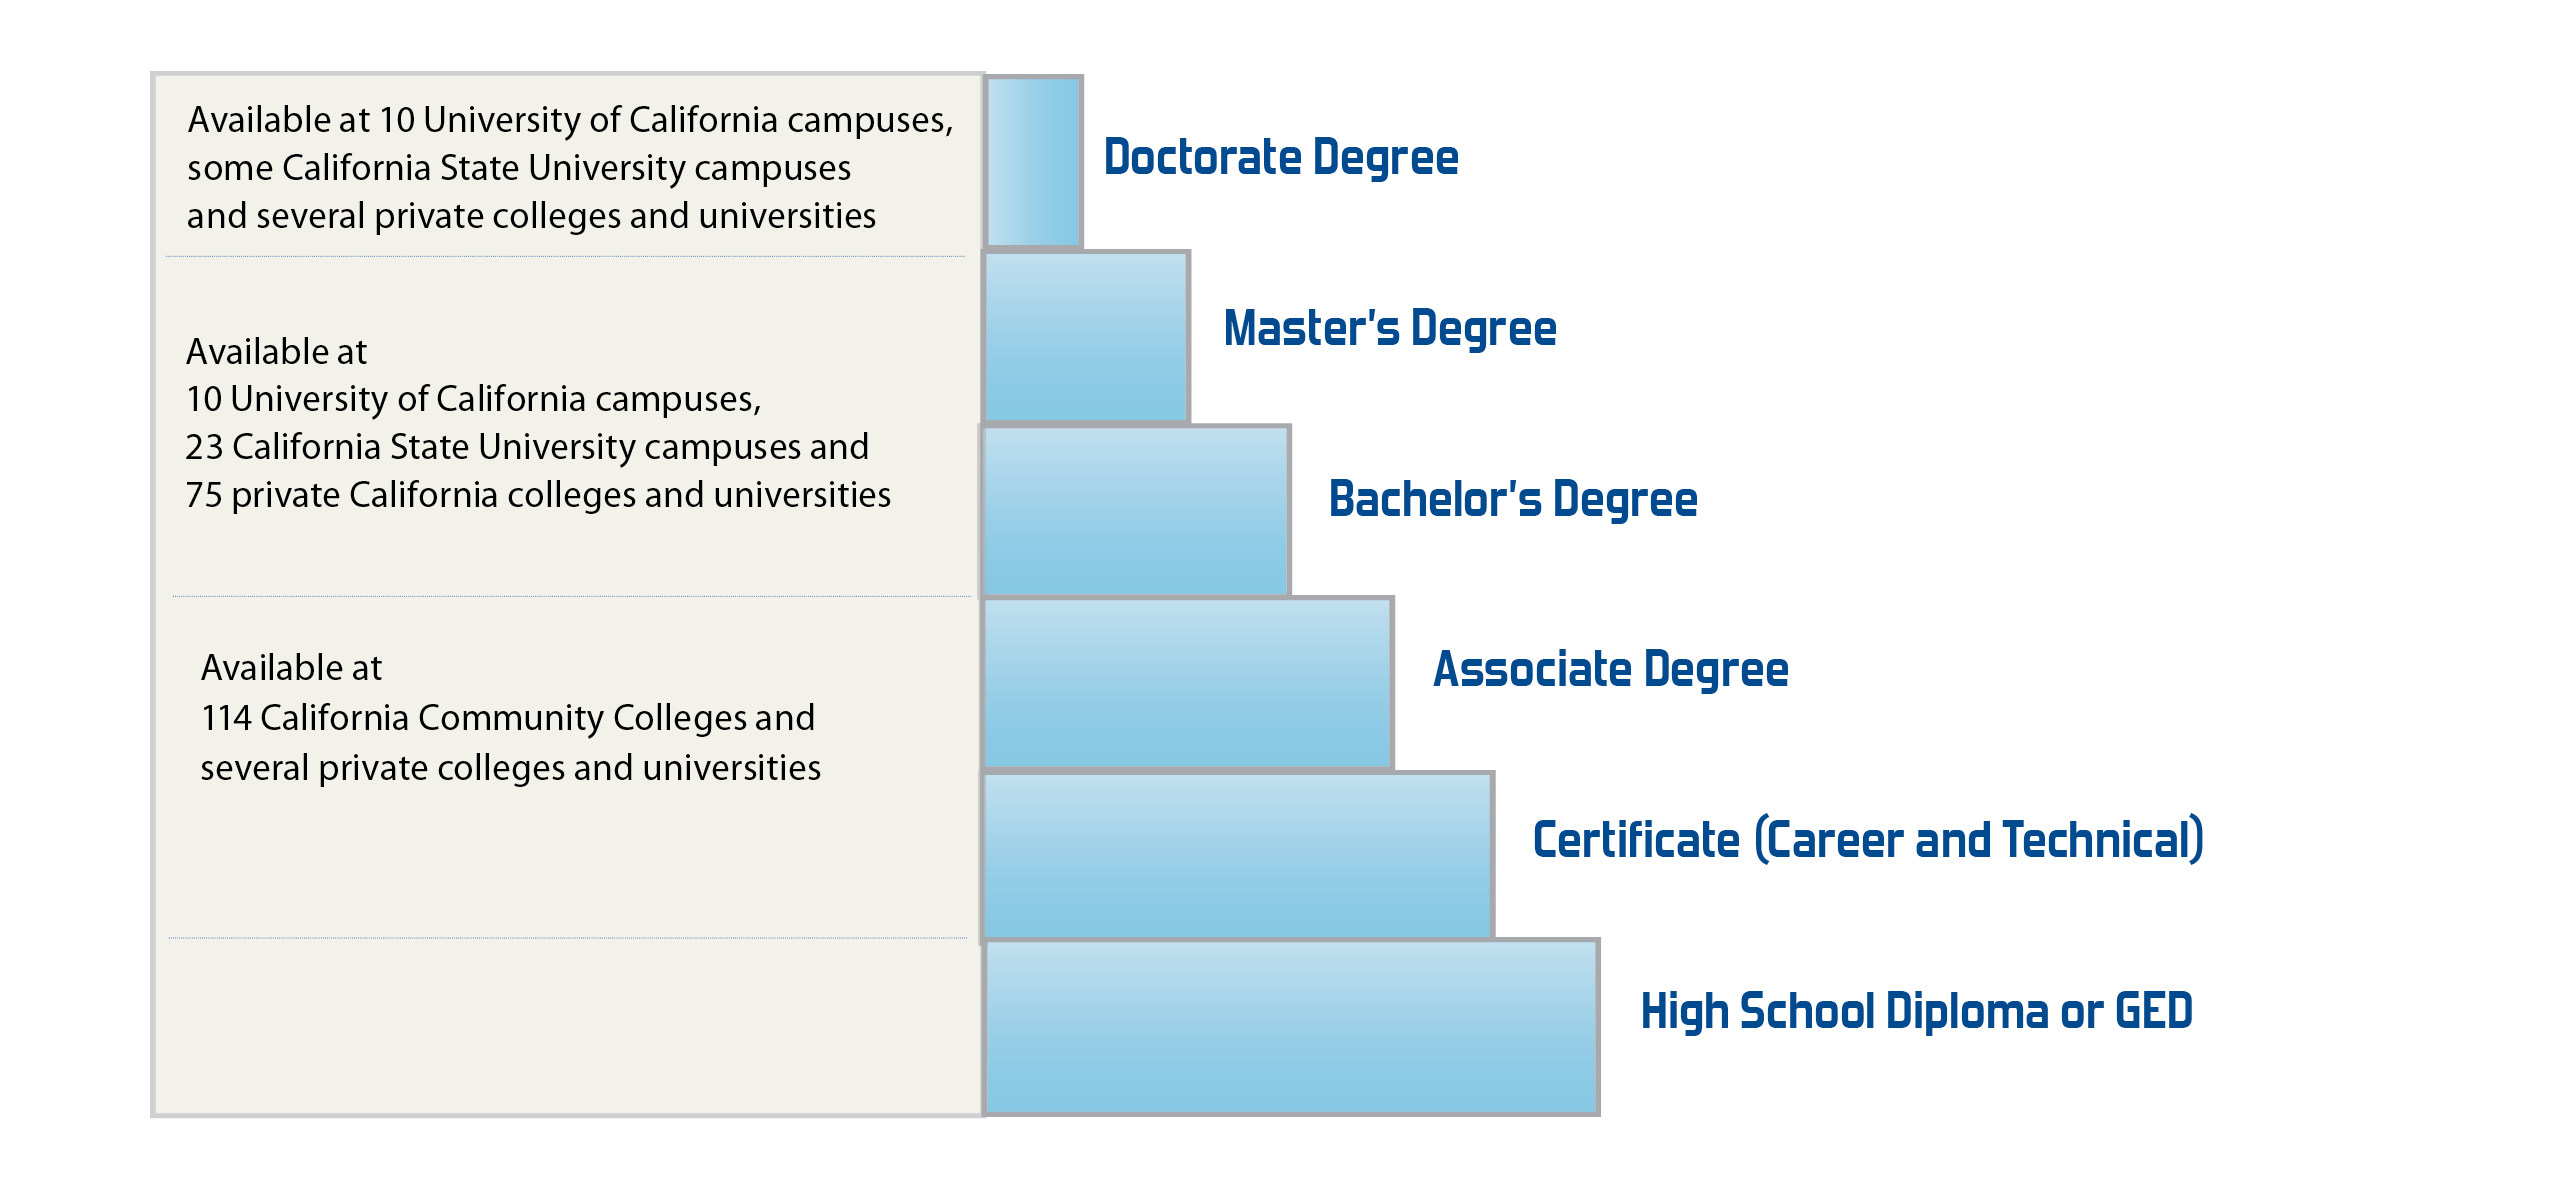 Chart showing educational options. A doctorate degree is available at universities and private colleges. Master's and bachelor's degrees are available at UC, CSU and private colleges and universities. Certificates and associate degrees are available at 114 California community colleges and several private institutions. A high school diploma or GED is the baseline to earning any of these.